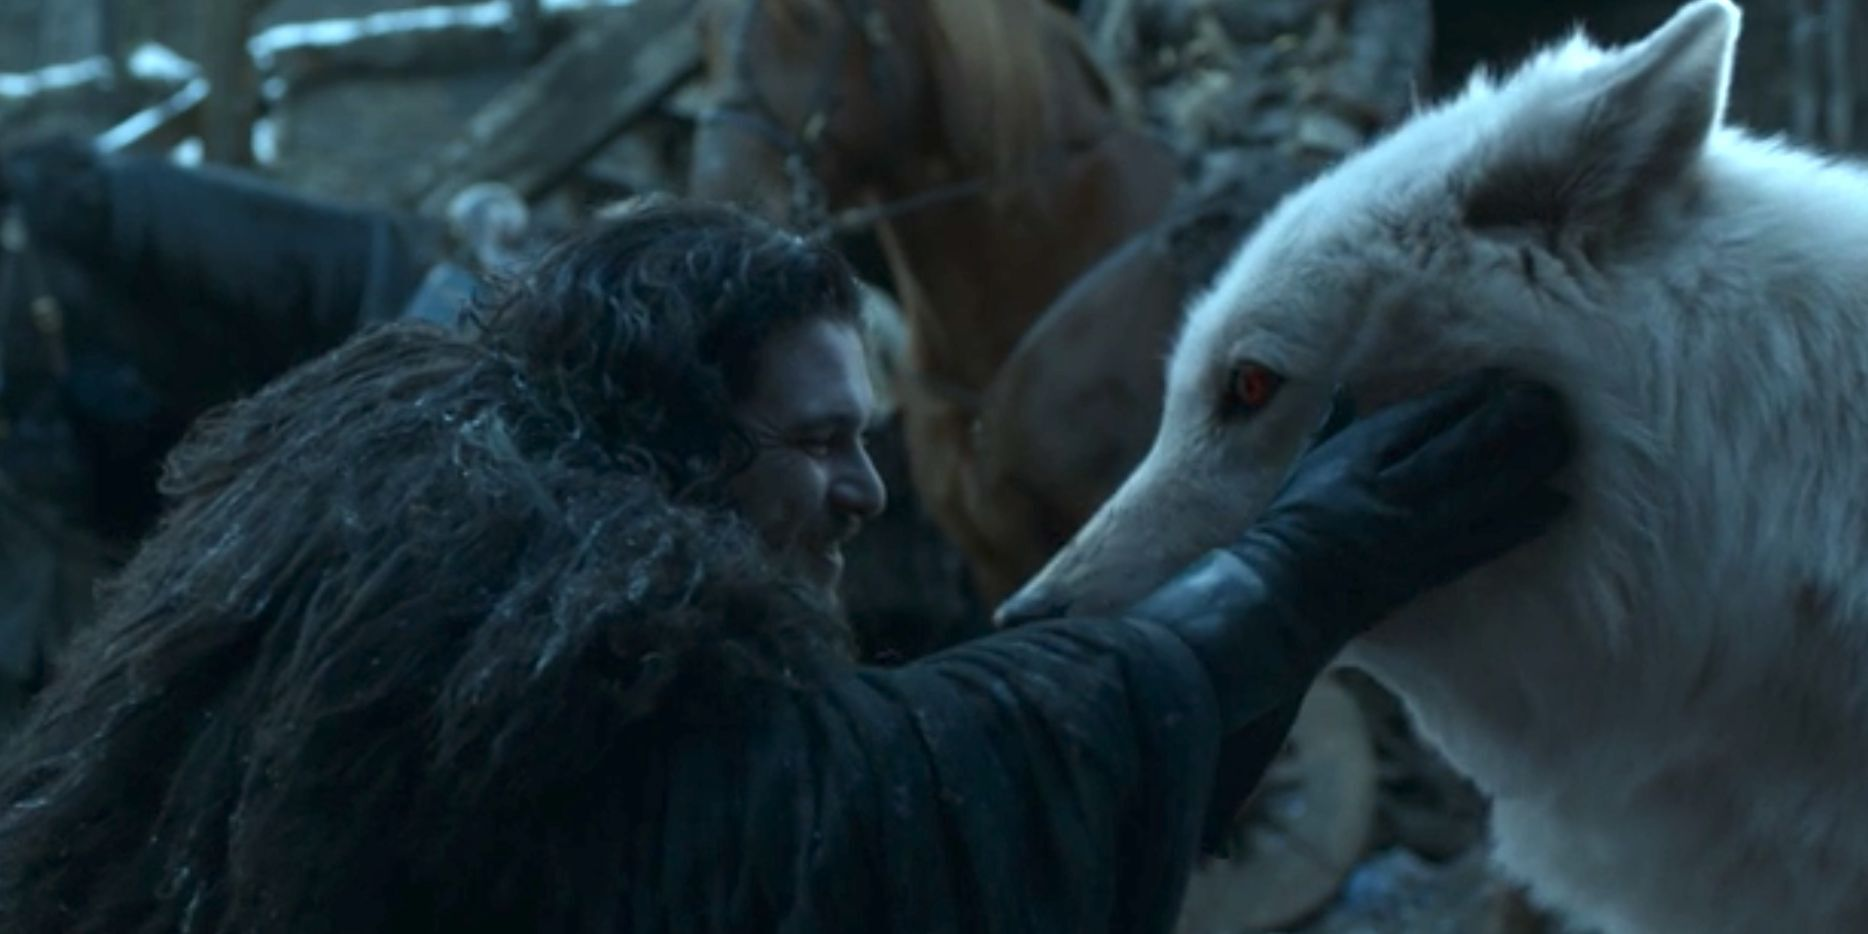 """Twitter reacts to Jon and Ghost's tender moment in """"The Iron Throne"""" - Winter is Coming image"""